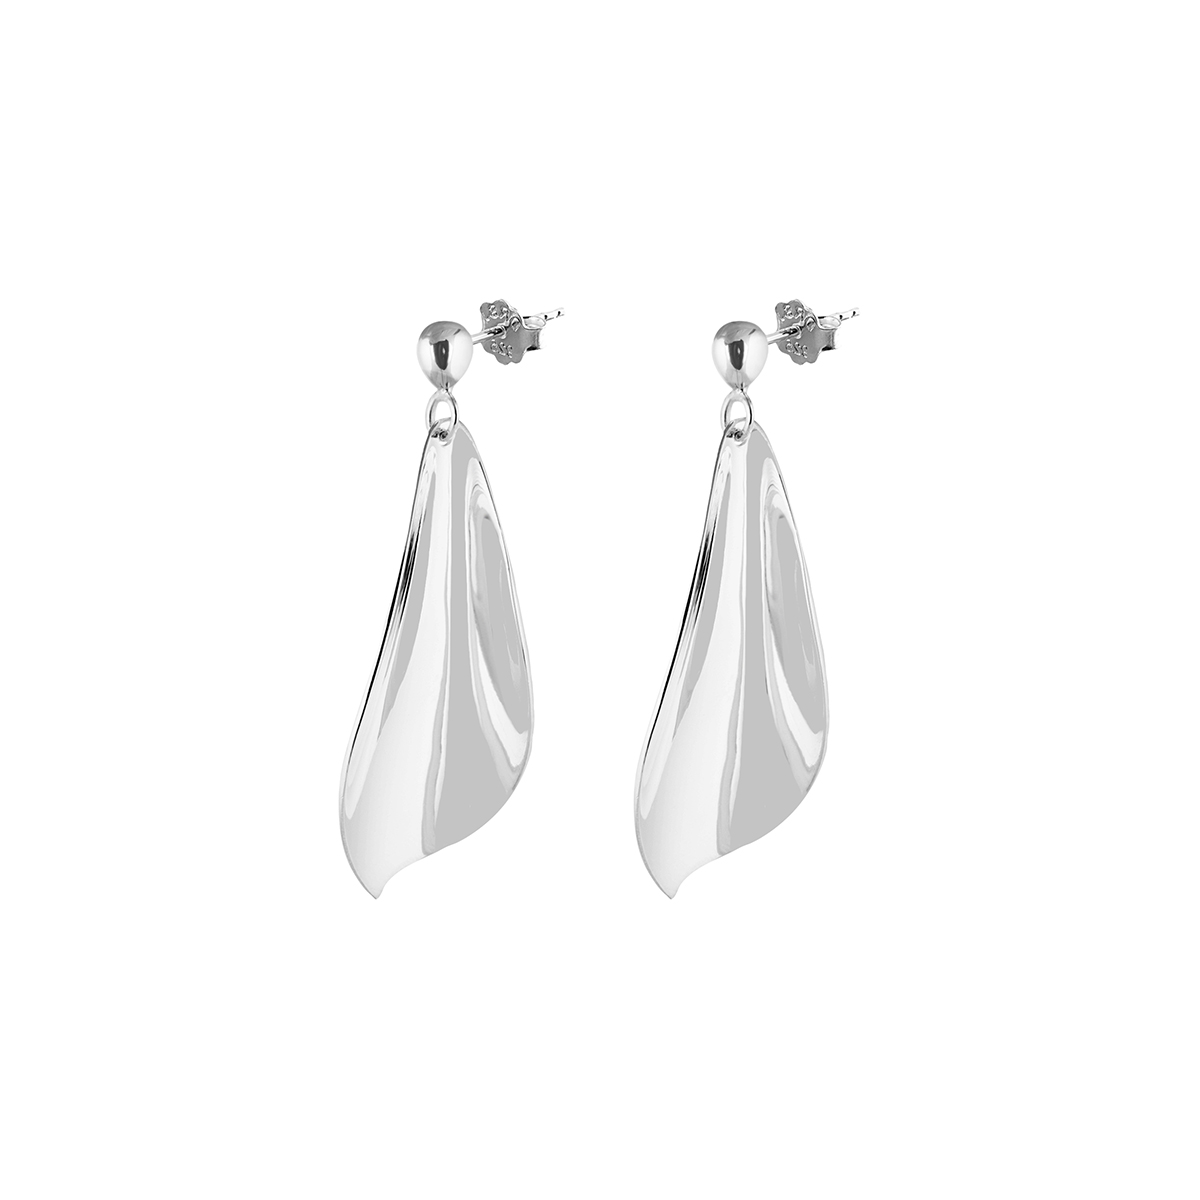 Drakenberg_Sjolin_Gardenia-earrings